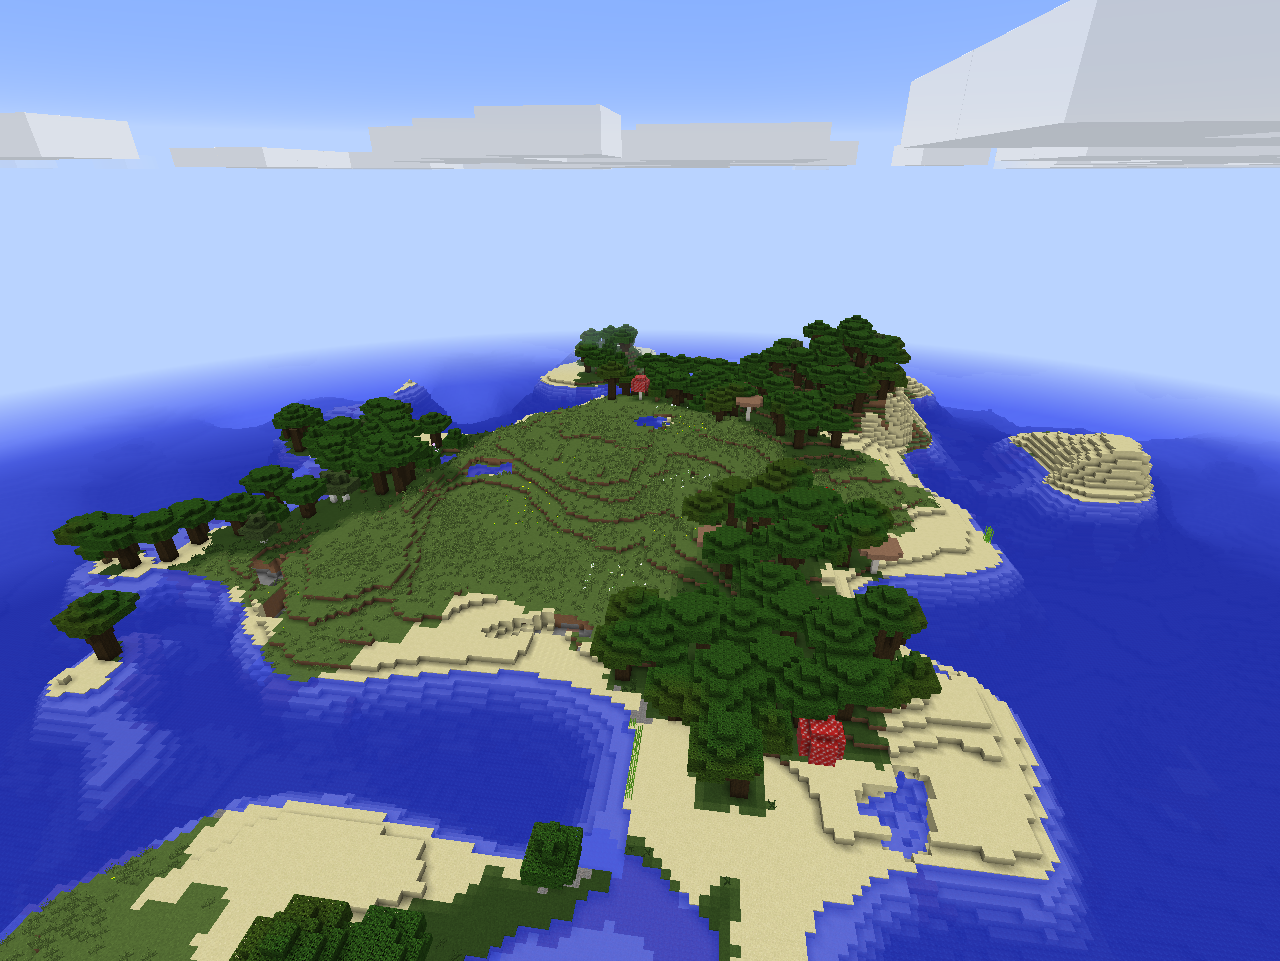 1 8 8 Seed Roofed Forest Haven Seeds Minecraft Java Edition Minecraft Forum Minecraft Forum